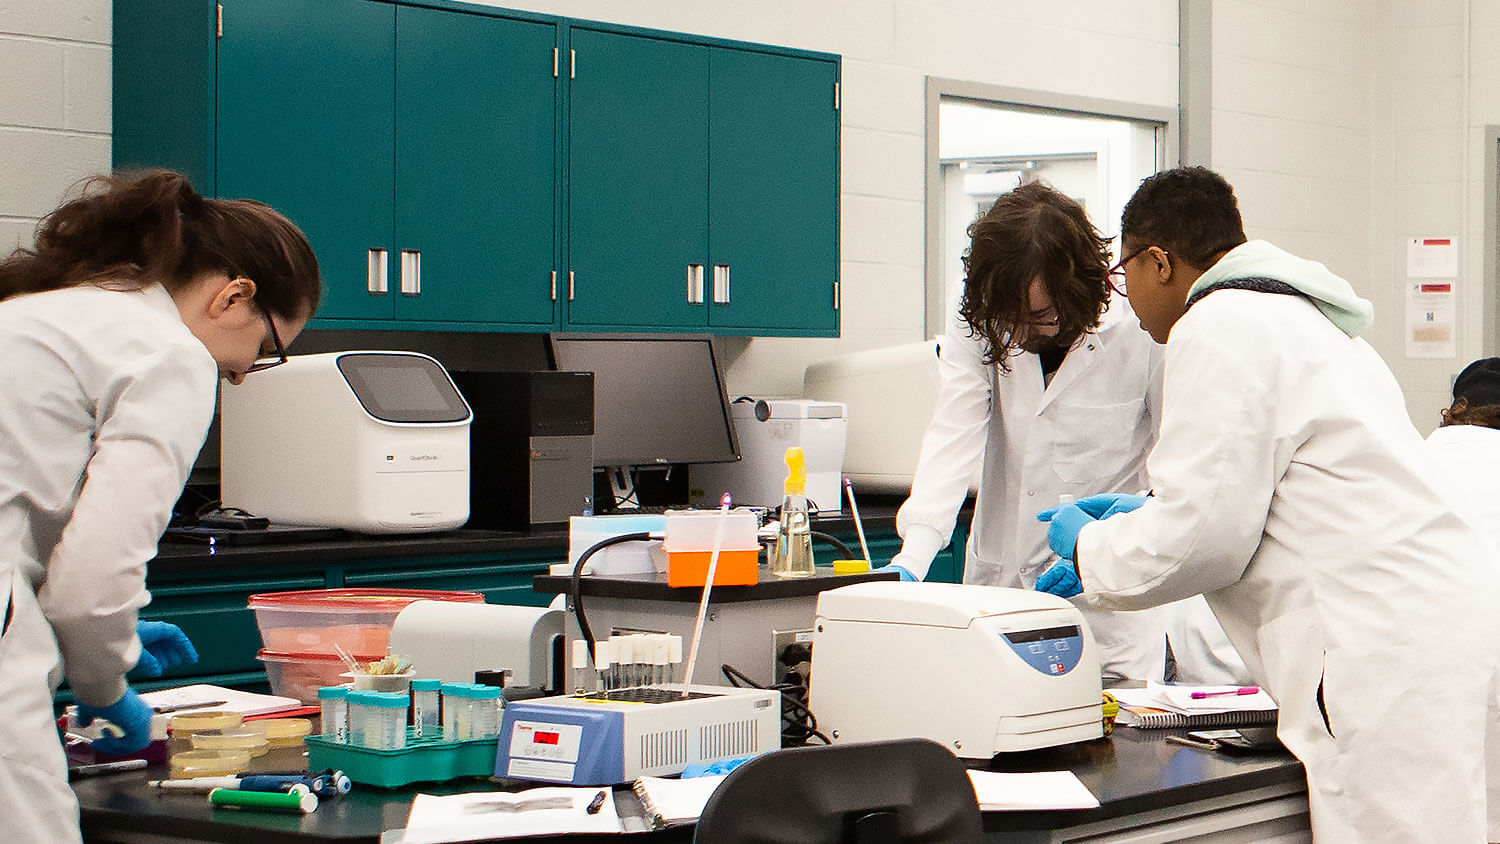 Students working in the genomics lab during class.